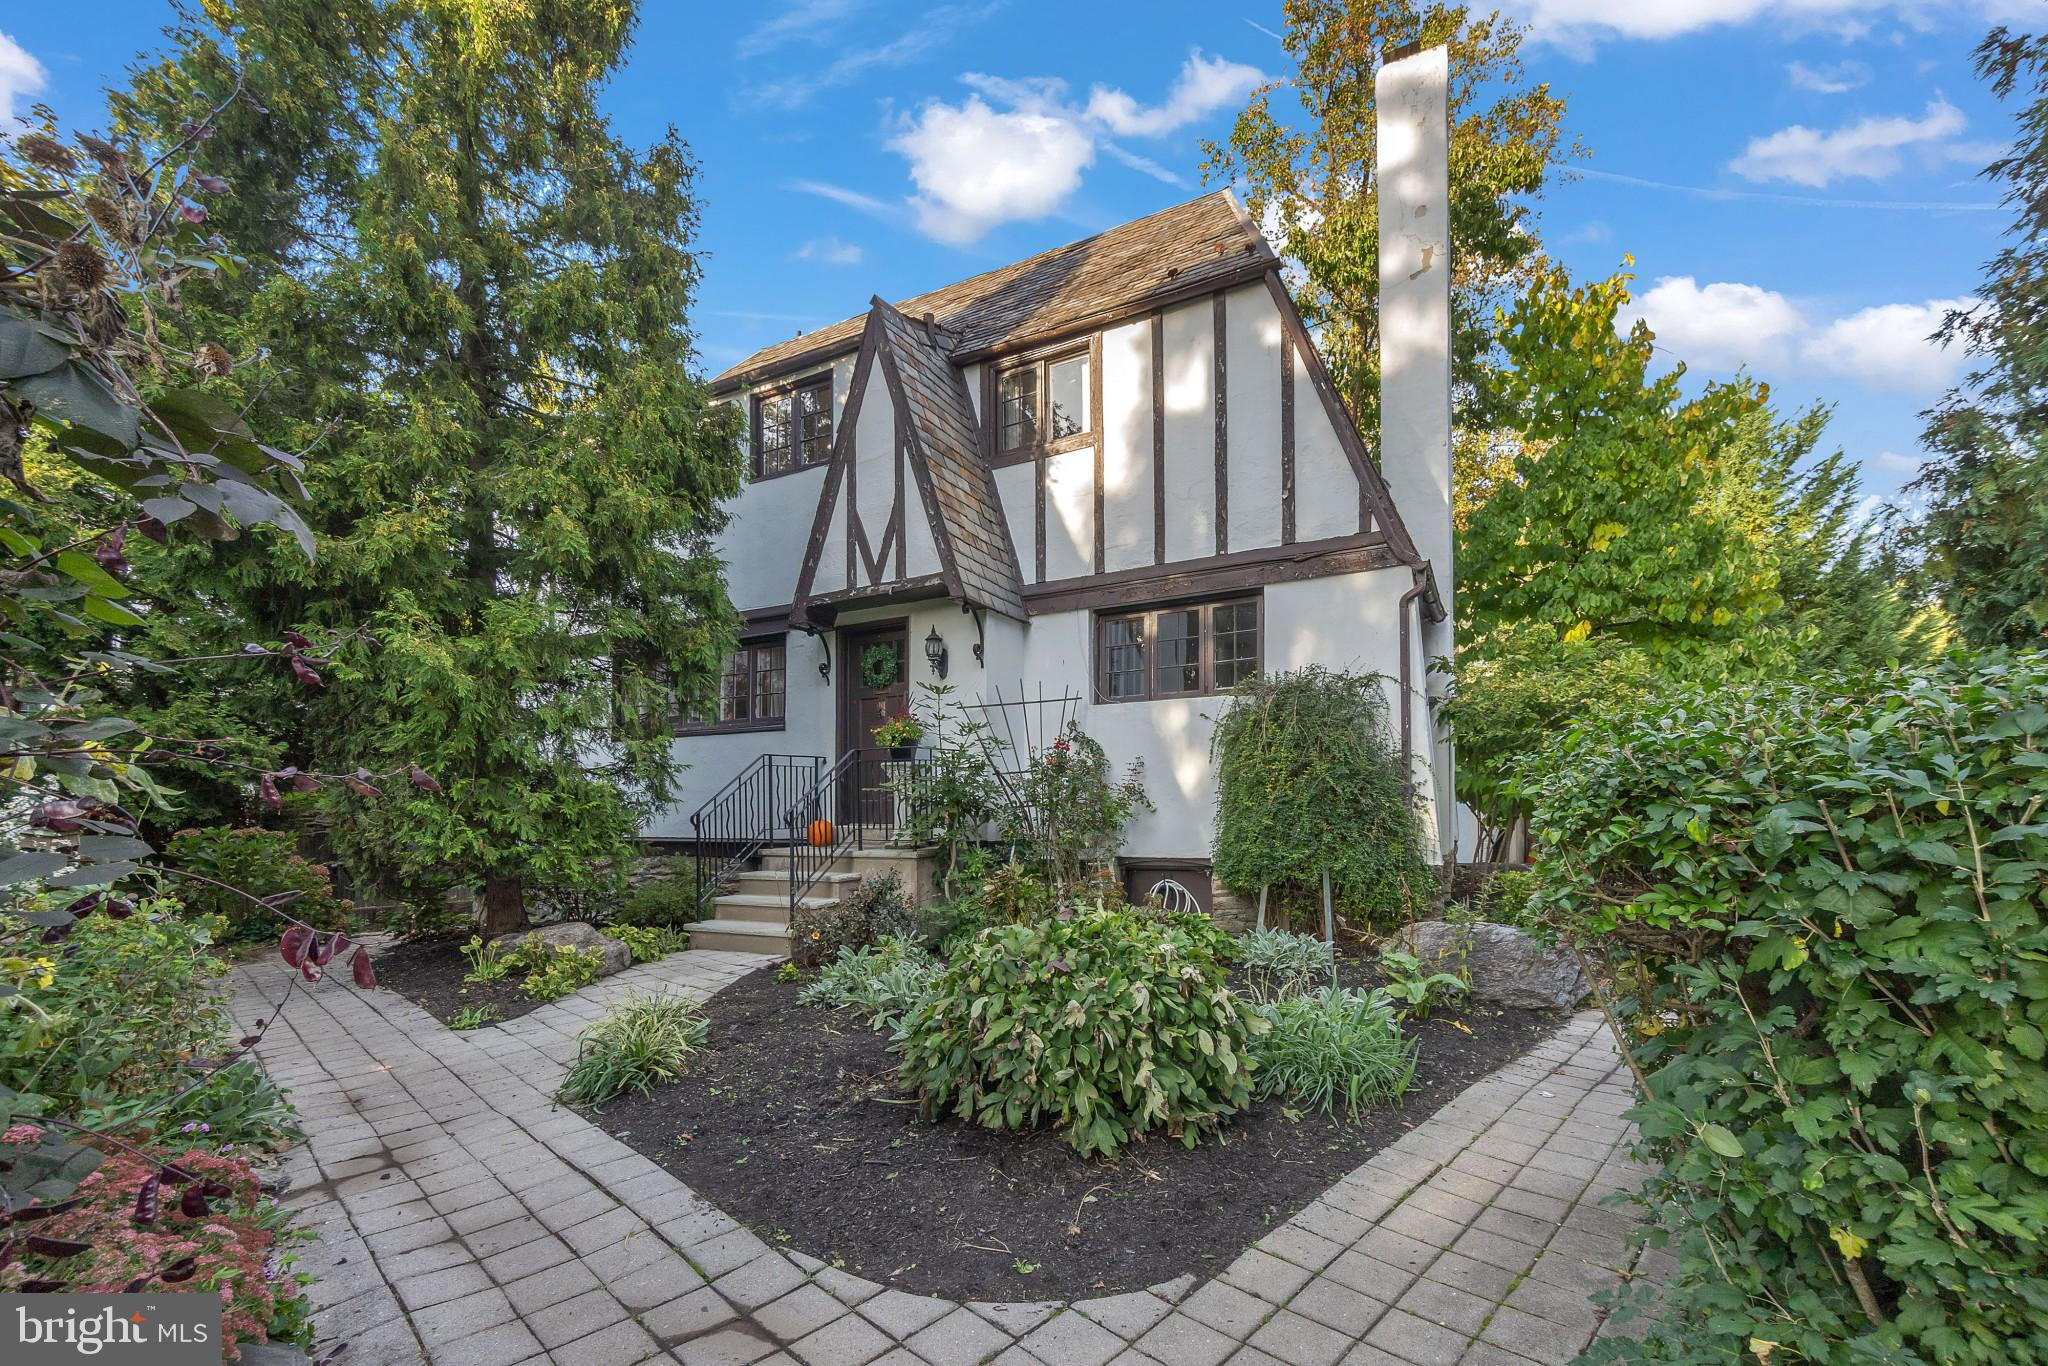 This bright and sunny English Tudor cottage is filled with charm and located within the tucked away community of Balwyn Place, situated off of Bala Ave with close proximity to Philadelphia, and within award winning Lower Merion school district. This charming collection of 8 homes were built in the mid-1920's, originally serving as an artists community.  As you enter this corner property through the beautiful front courtyard, you'll instantly be greeted by vibrant English gardens showcasing a gorgeous medley of perennials and fruit trees.  Enter through the front door and take note of rich hardwood flooring throughout the home. The first floor features a tiled entryway with coat closet and a spacious living room with a beautiful wood burning fireplace and original stained glass window to the staircase. There's a separate dining room with a built-in glass cabinet, perfect for additional storage while entertaining. There's a reading nook adjacent to the dining room, which would also make a great home office area. French doors open to a peaceful deck (installed 2017) with a beautiful Wisteria tree, providing both shade and privacy.  The kitchen features elegant black cabinetry, stainless steel appliances, remarkable copper countertops, state-of-the-art wine refrigerator, lustrous slate floors, and gas cooking. There's a large pantry closet for additional storage. There's a powder room off of the kitchen along with a rear exterior door providing access to the back of the property, garage and driveway area. The second level features a spacious main bedroom with two closets, a generous sized hall full bathroom with shower/tub, and two additional spacious bedrooms with beautiful windows and tons of natural light.  This cottage home boasts a full sized, unfinished basement with a walk-out exit to the exterior and a laundry area with a utility sink and shelf storage. There's a walk up third level attic with potential to be utilized for storage or finished to serve as added li